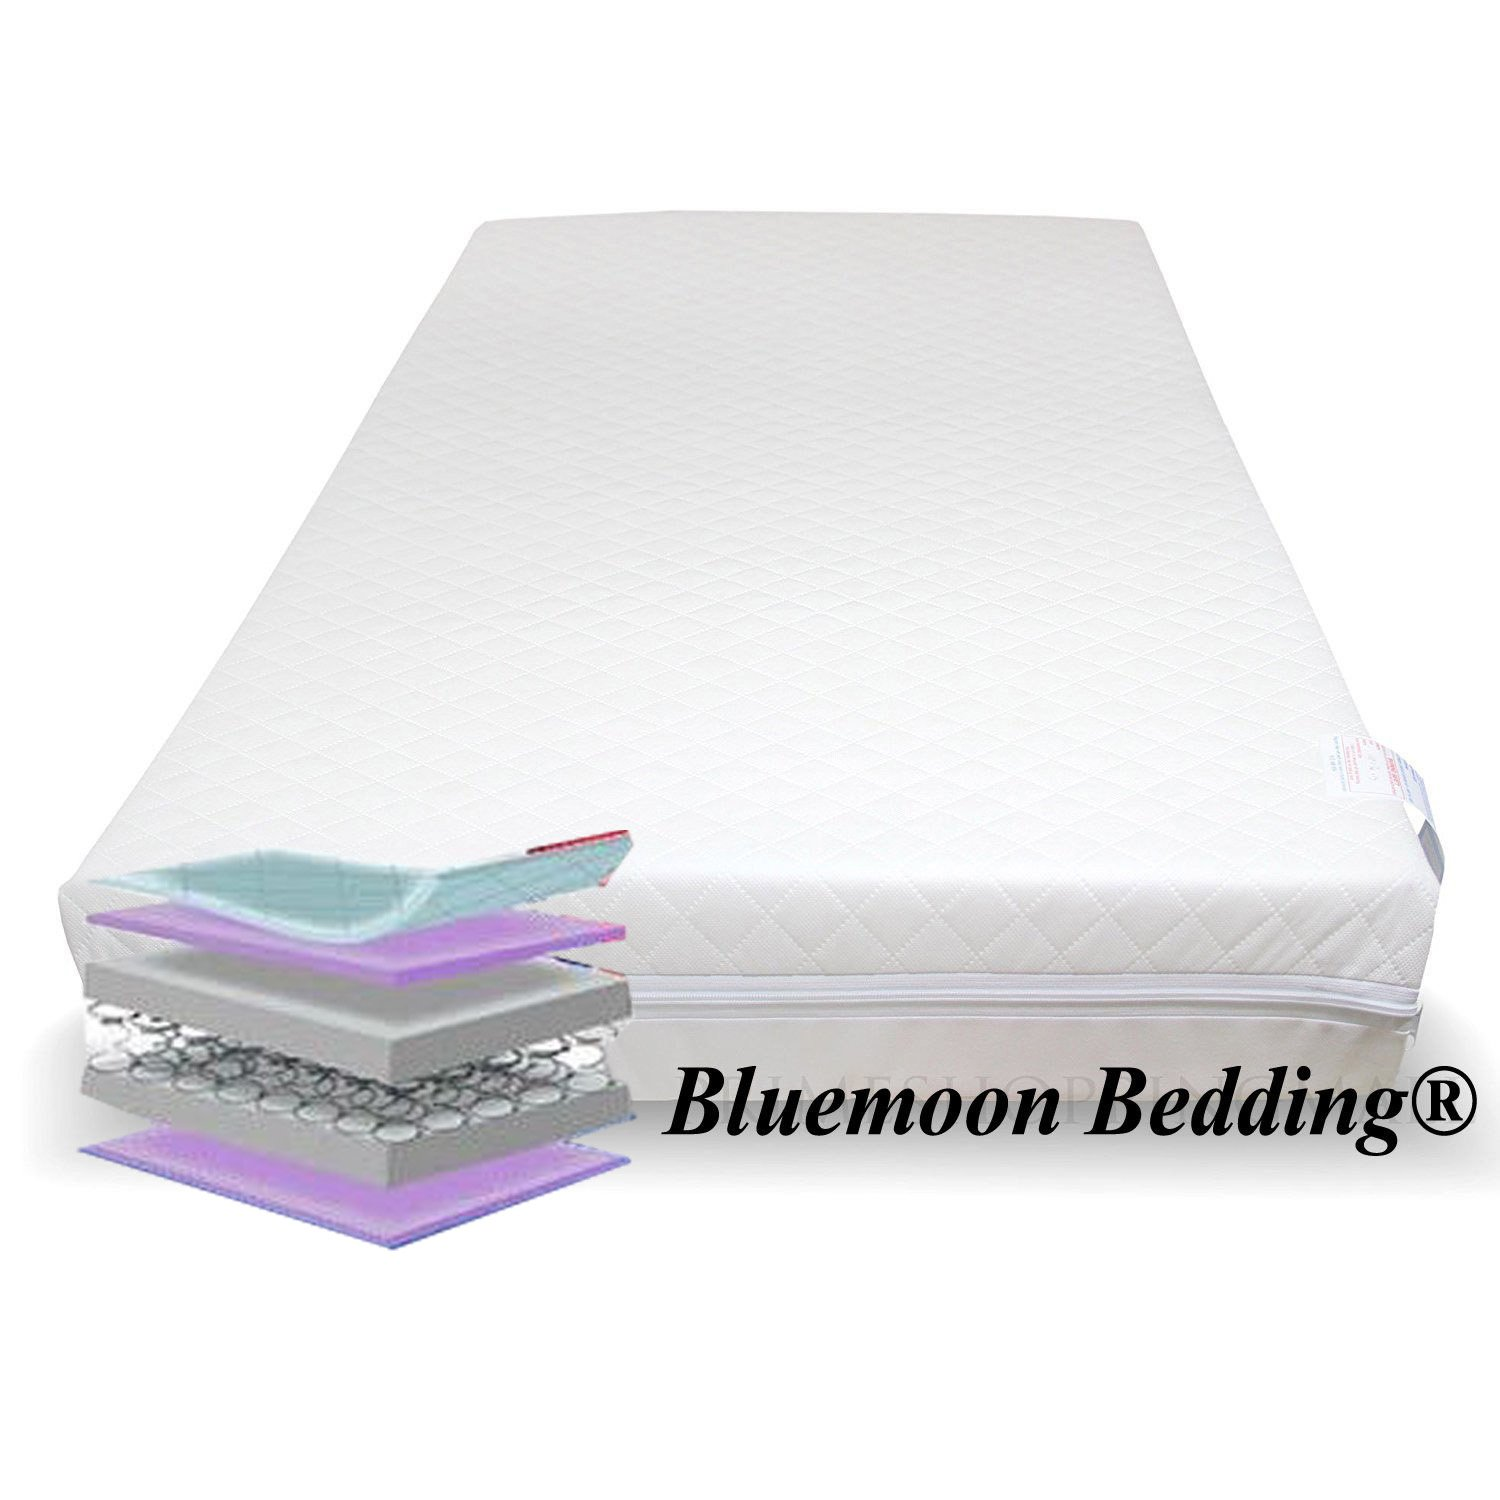 huge discount 1c6a2 51ba1 QUILTED SPRING COT BED MATTRESS BABY COT MATTRESSES (120X60X13 CM)